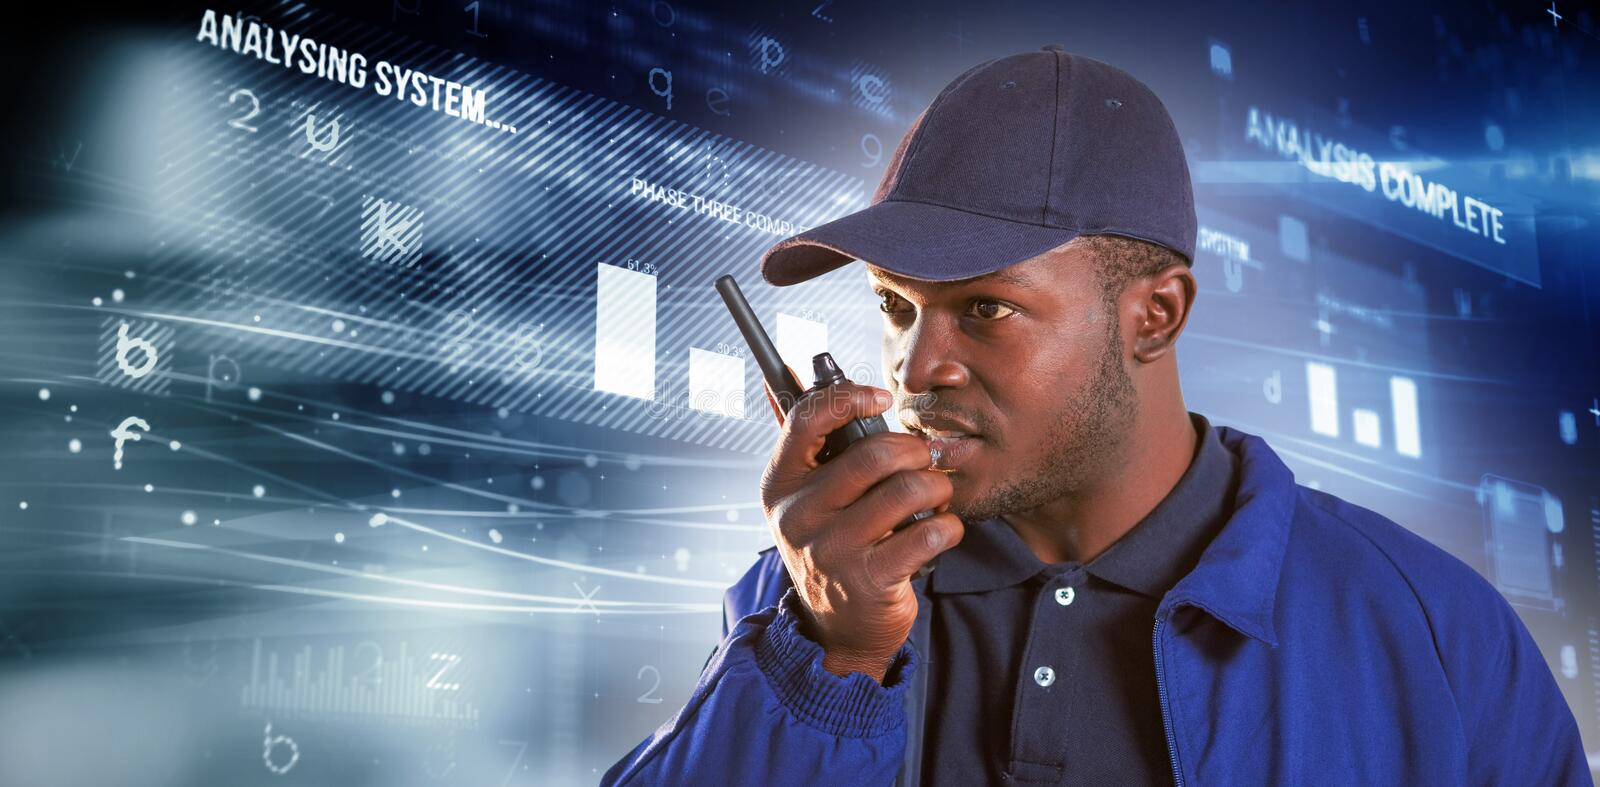 Composite image of security officer talking on walkie talkie. Security officer talking on walkie talkie against virus background royalty free stock images